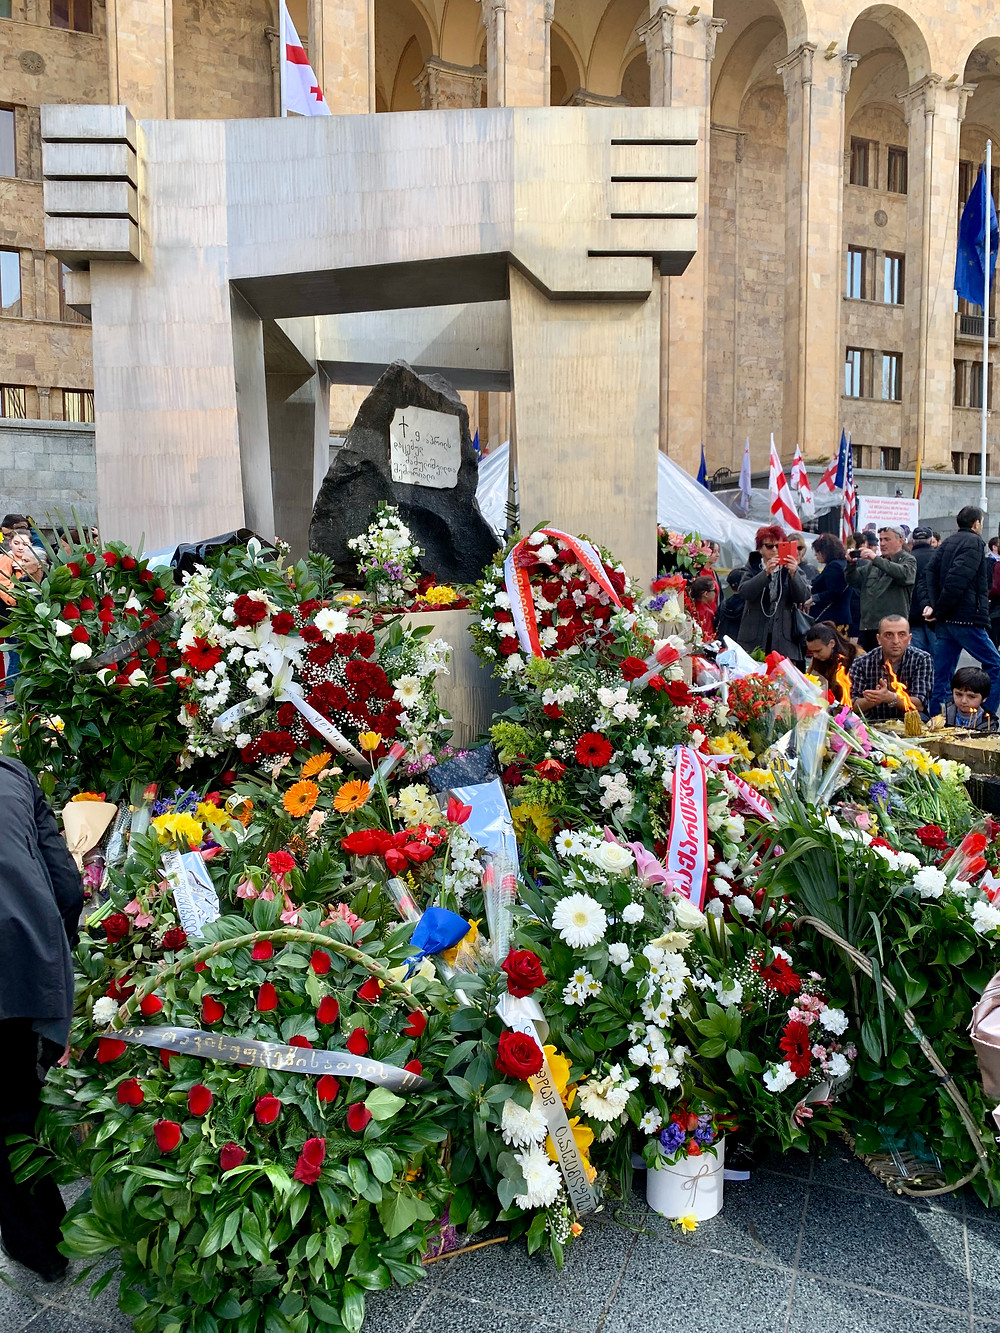 09 April Memorial in front of the Georgian Parliament building in Tbilisi.